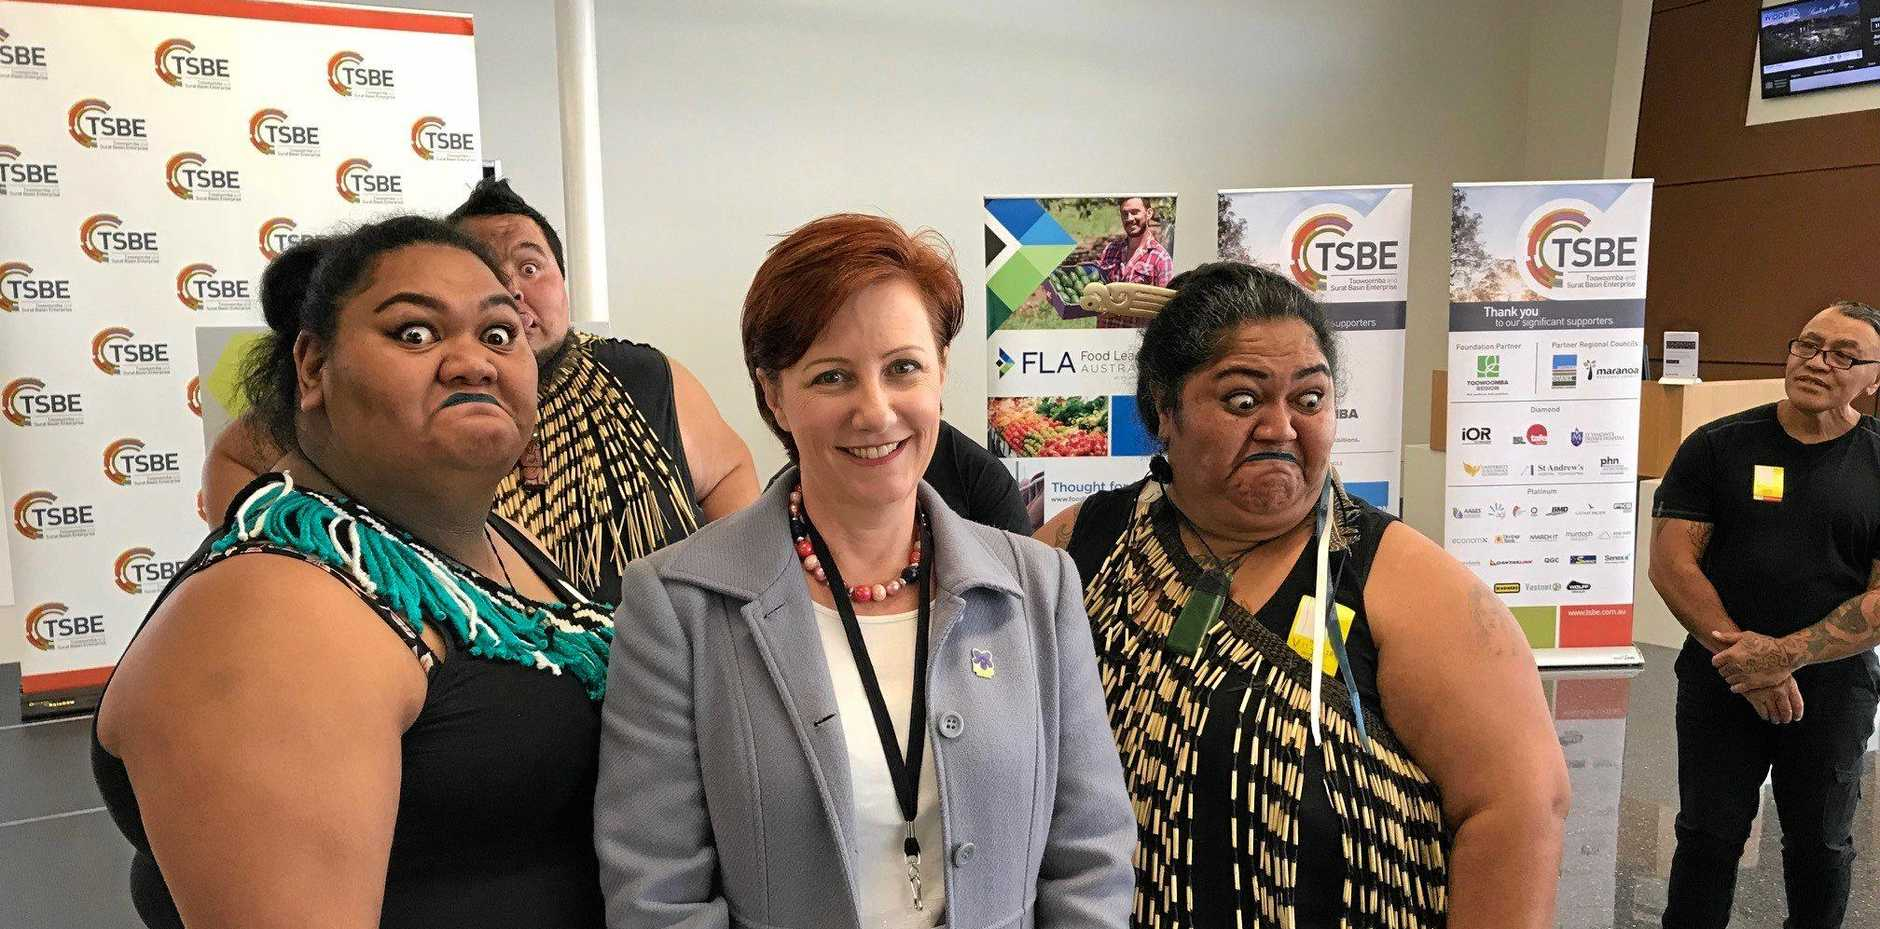 FLAGSHIP EVENT: Toowoomba and Surat Basin Enterprise CEO Ali Davenport (centre), with Queensland Maori Society's Tumanako Williams (left) and Melissa Mika, at the Access NZ launch which returned $4 million in business to the region.